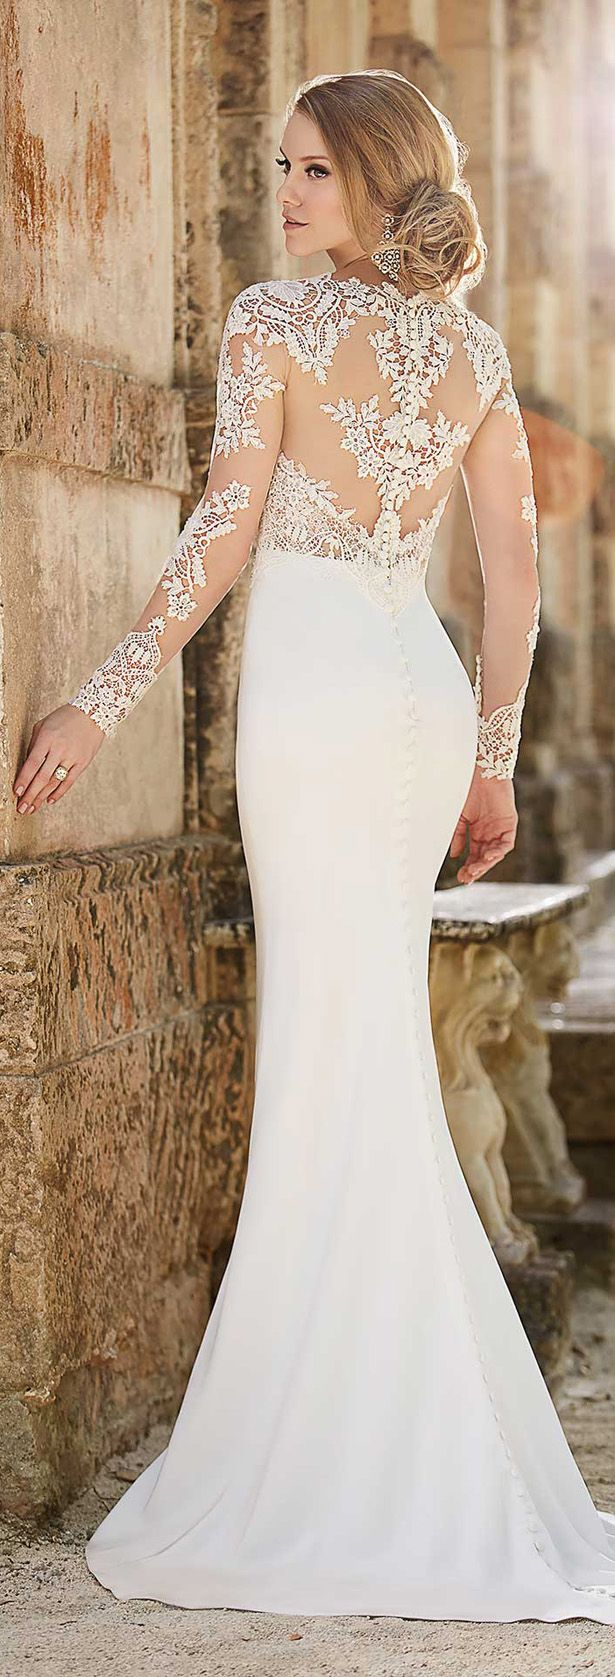 Sheer Back and Long Sleeve Antique Lace Top Wedding Dress with Covered Button Back